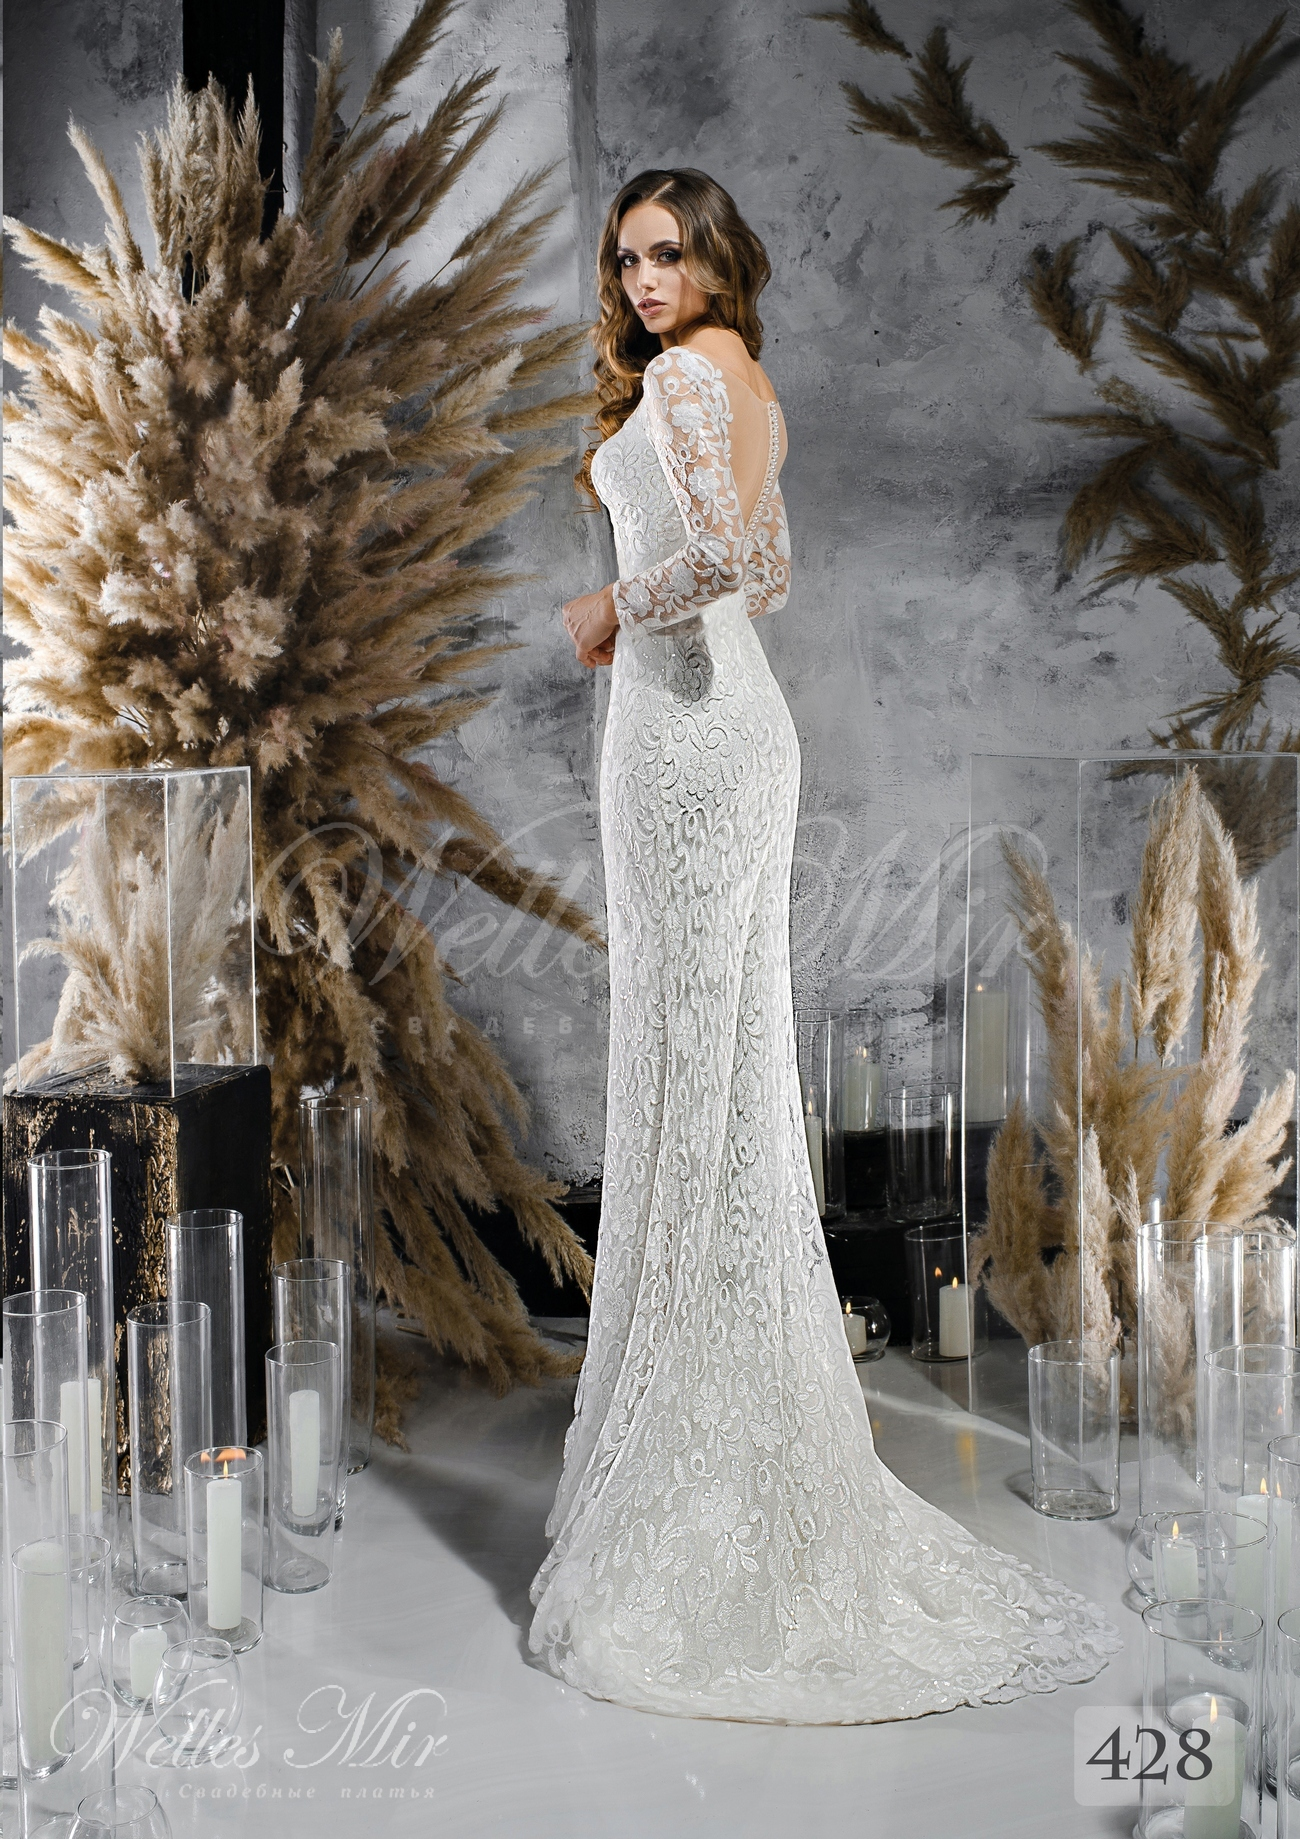 Lace wedding dress straight cut wholesale 428